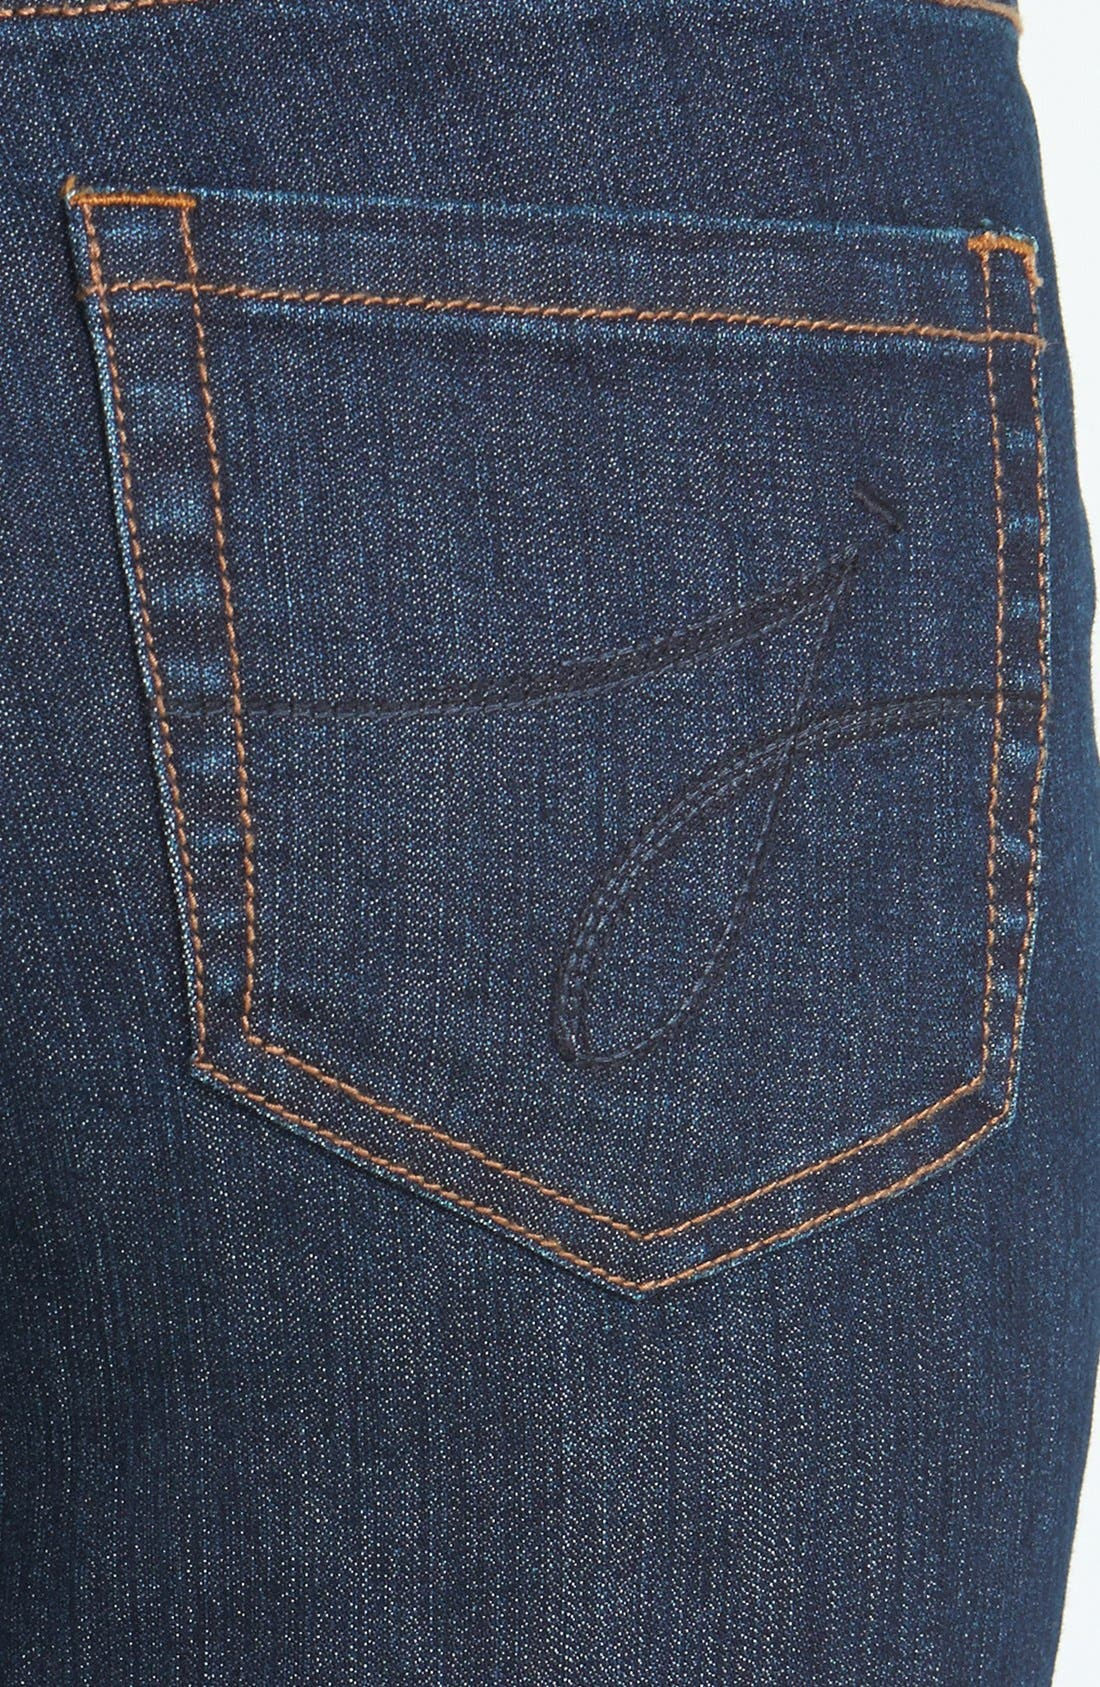 Alternate Image 3  - Jag Jeans 'Peri' Pull-On Straight Leg Jeans (Dark Shadow) (Online Only)